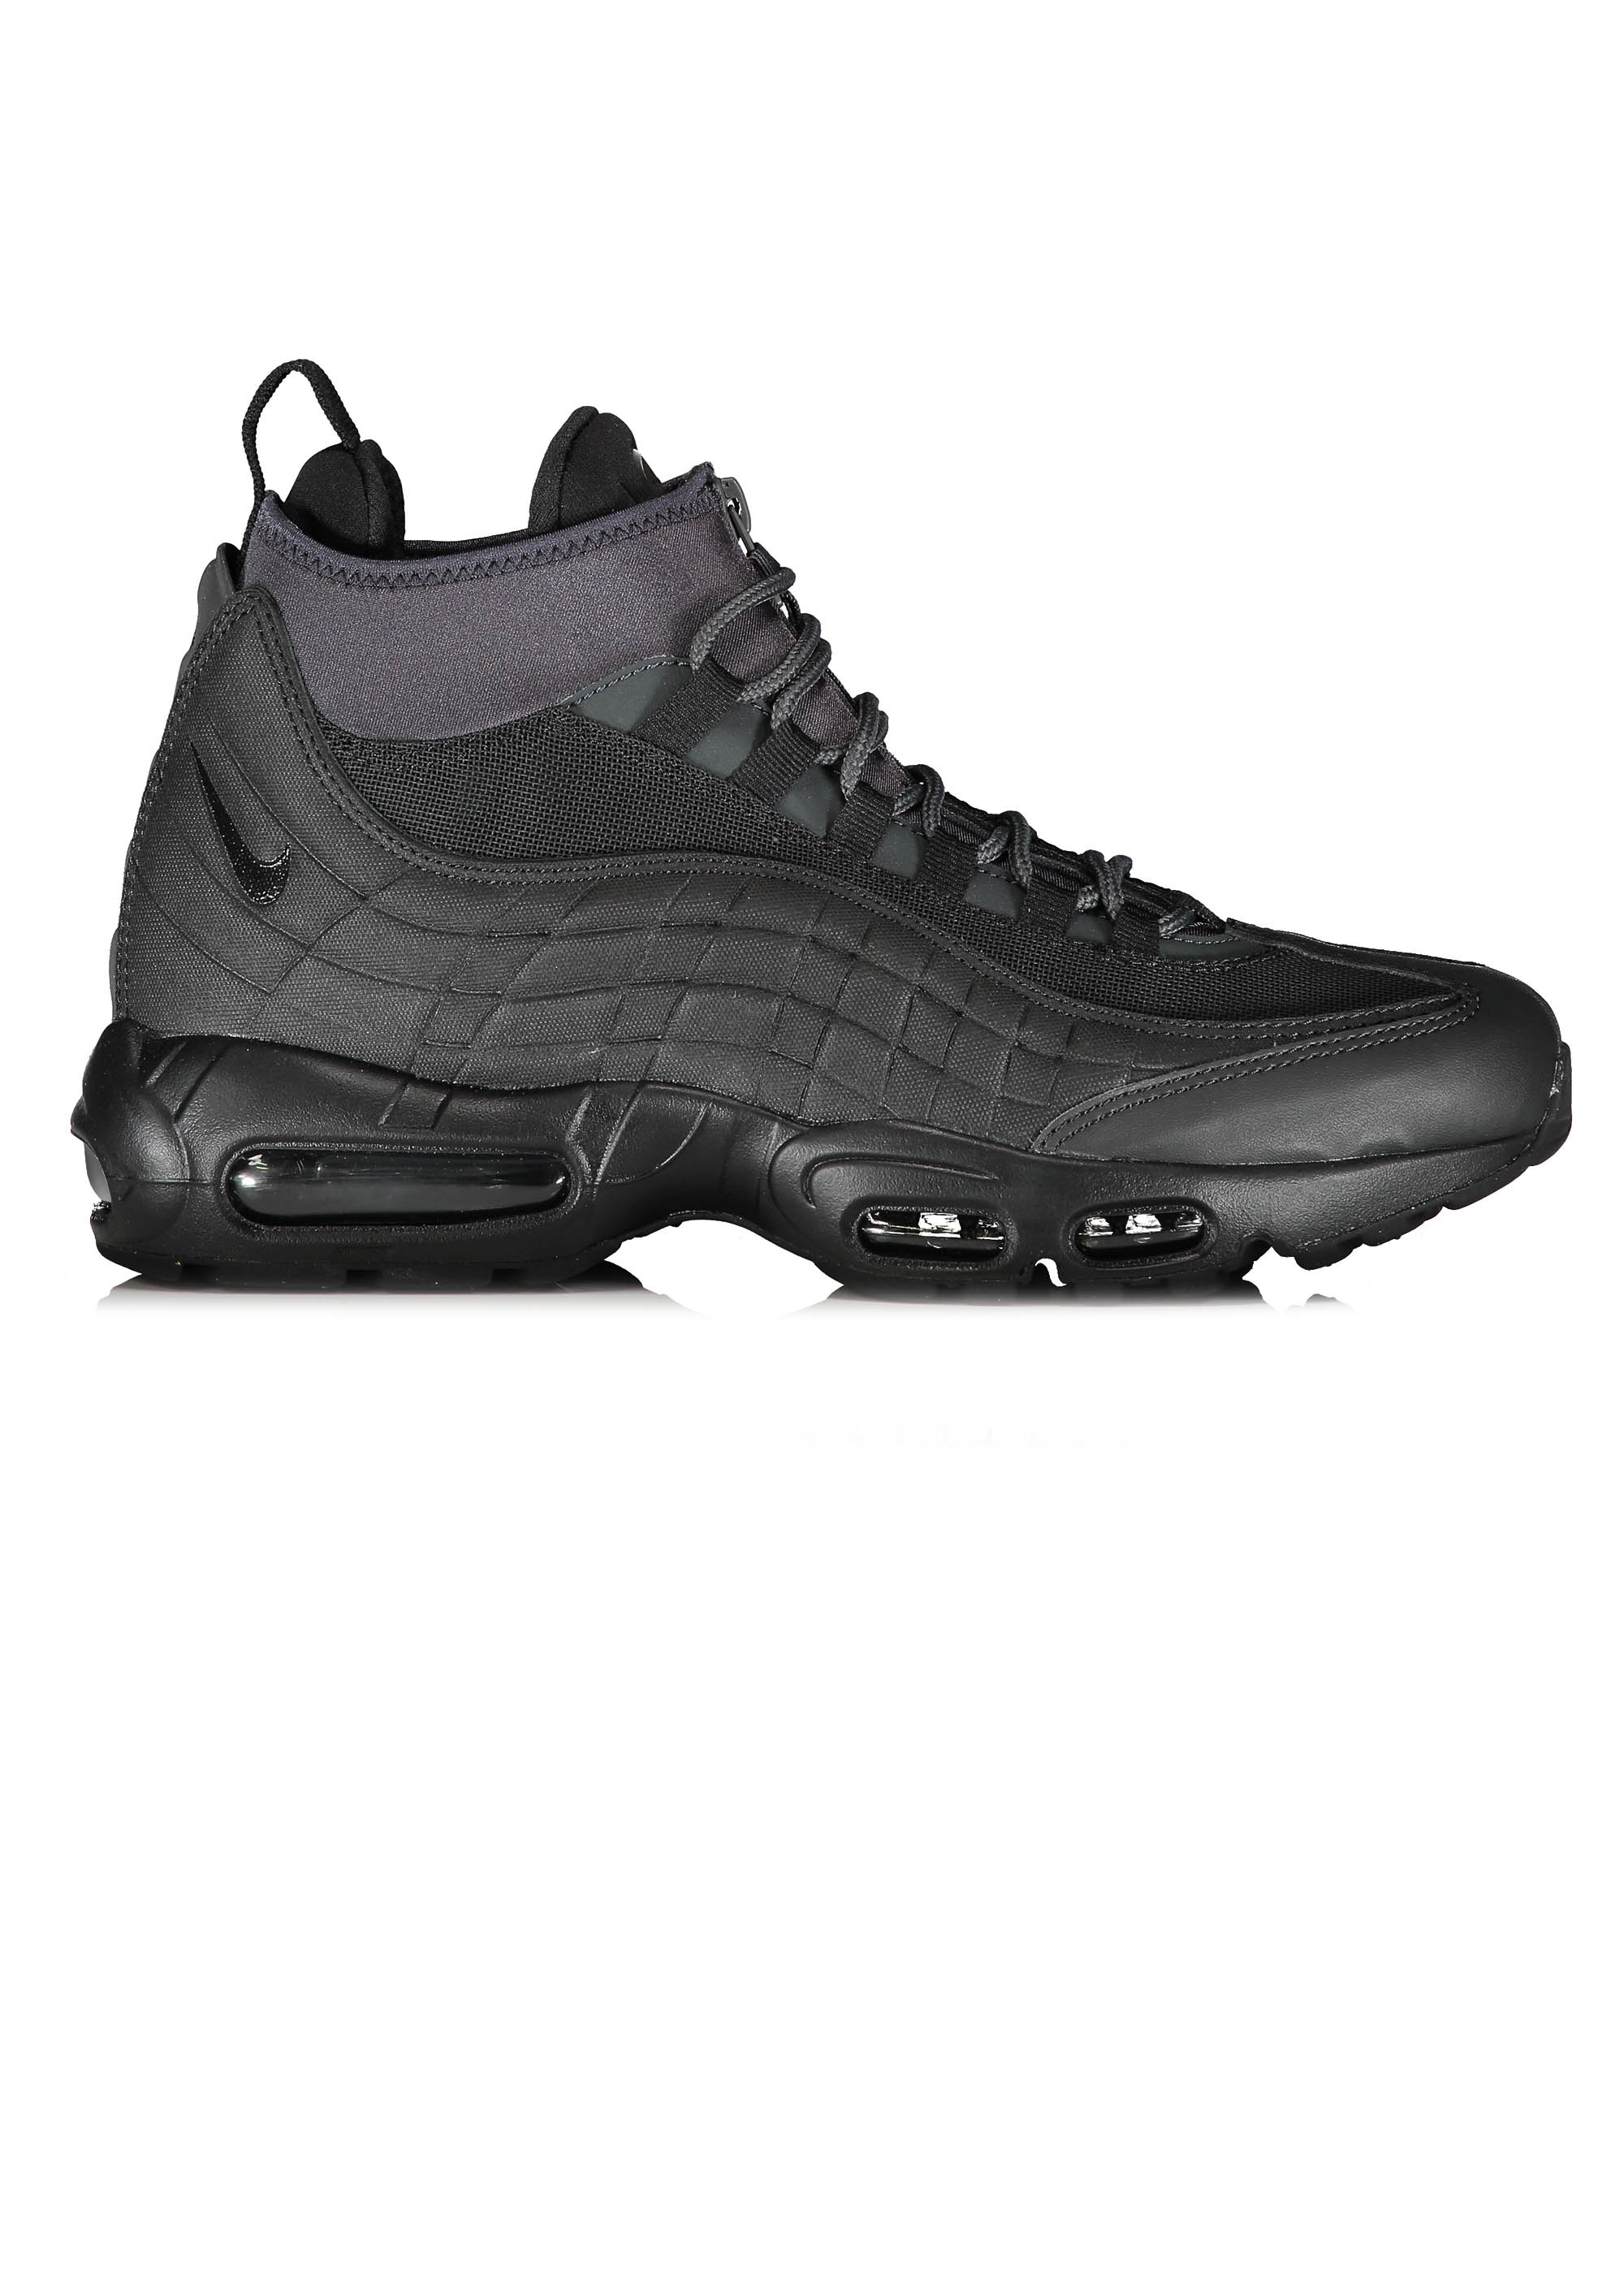 the latest 643cd 54bde Nike Footwear Air Max 95 Sneakerboot - Black